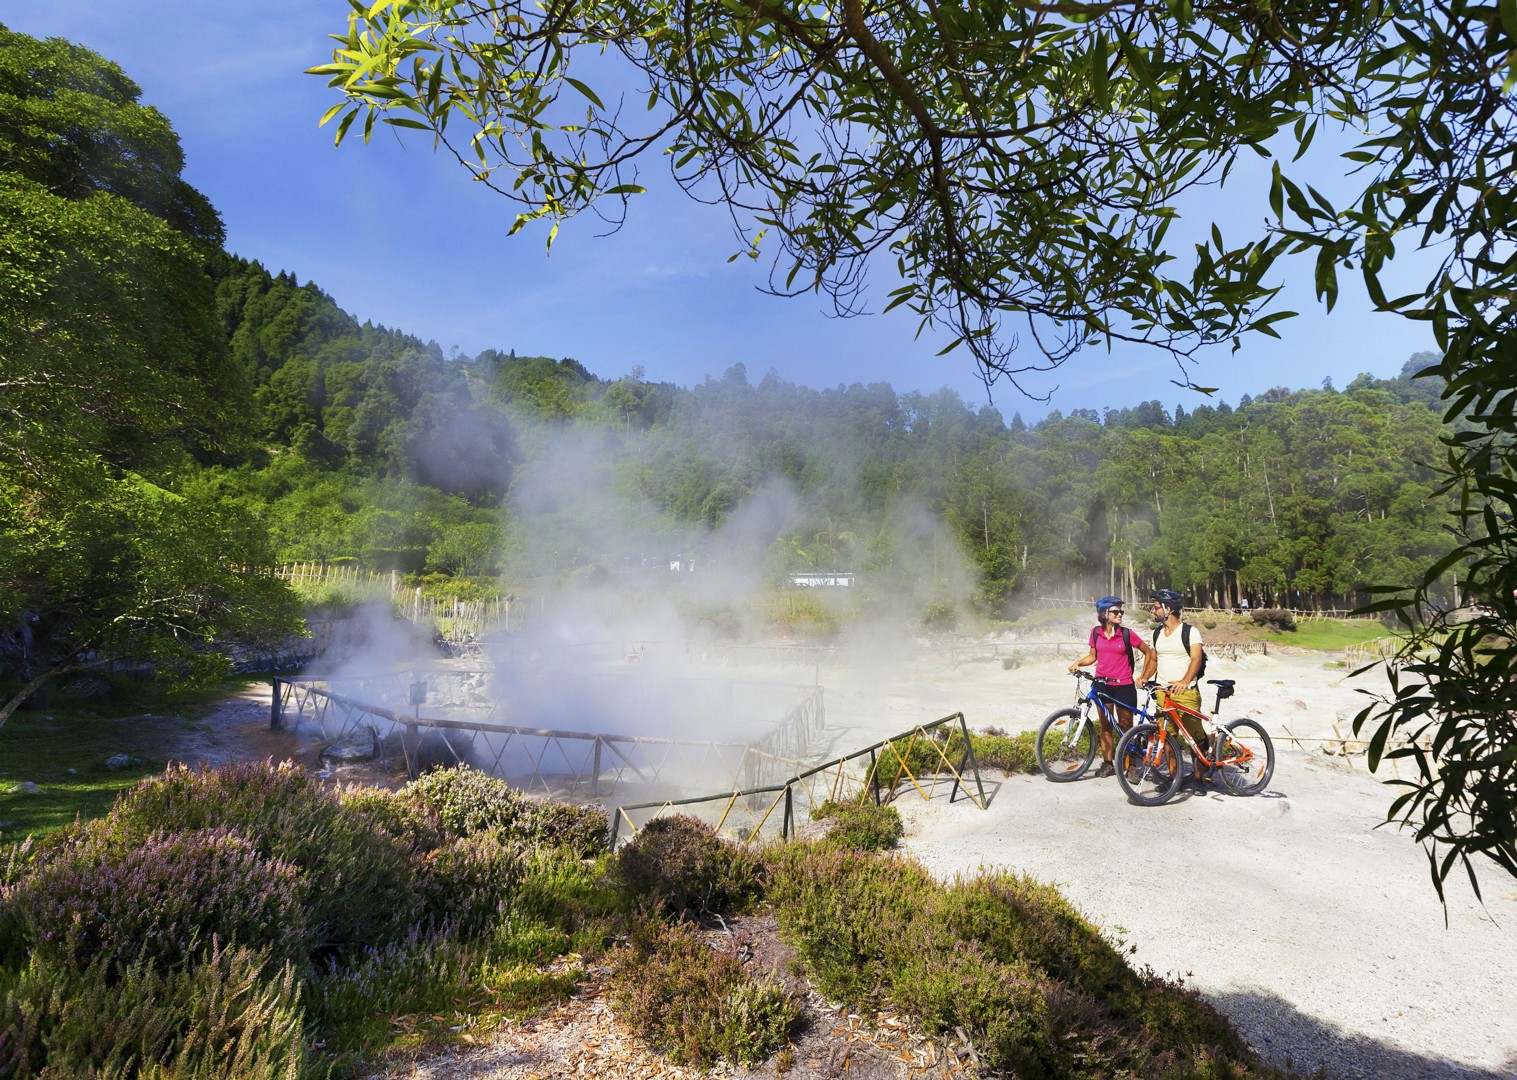 sete-cidades-route-azores-family-biking-trip.jpg - The Azores - Island Discoverer - Family Cycling